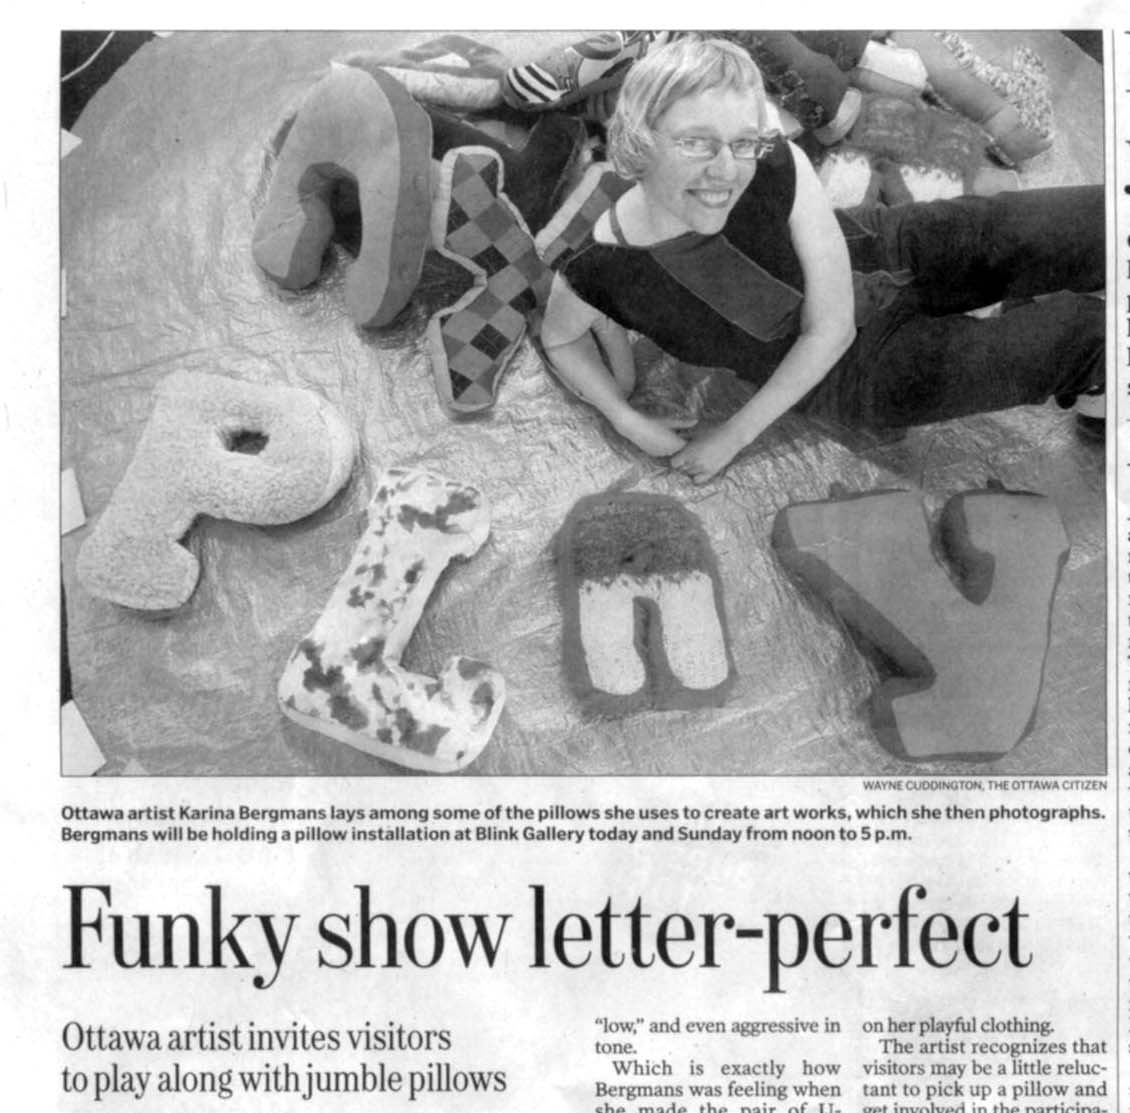 Funky show letter-perfect, by Dayanti Karunaratne, Ottawa Citizen, June 2009